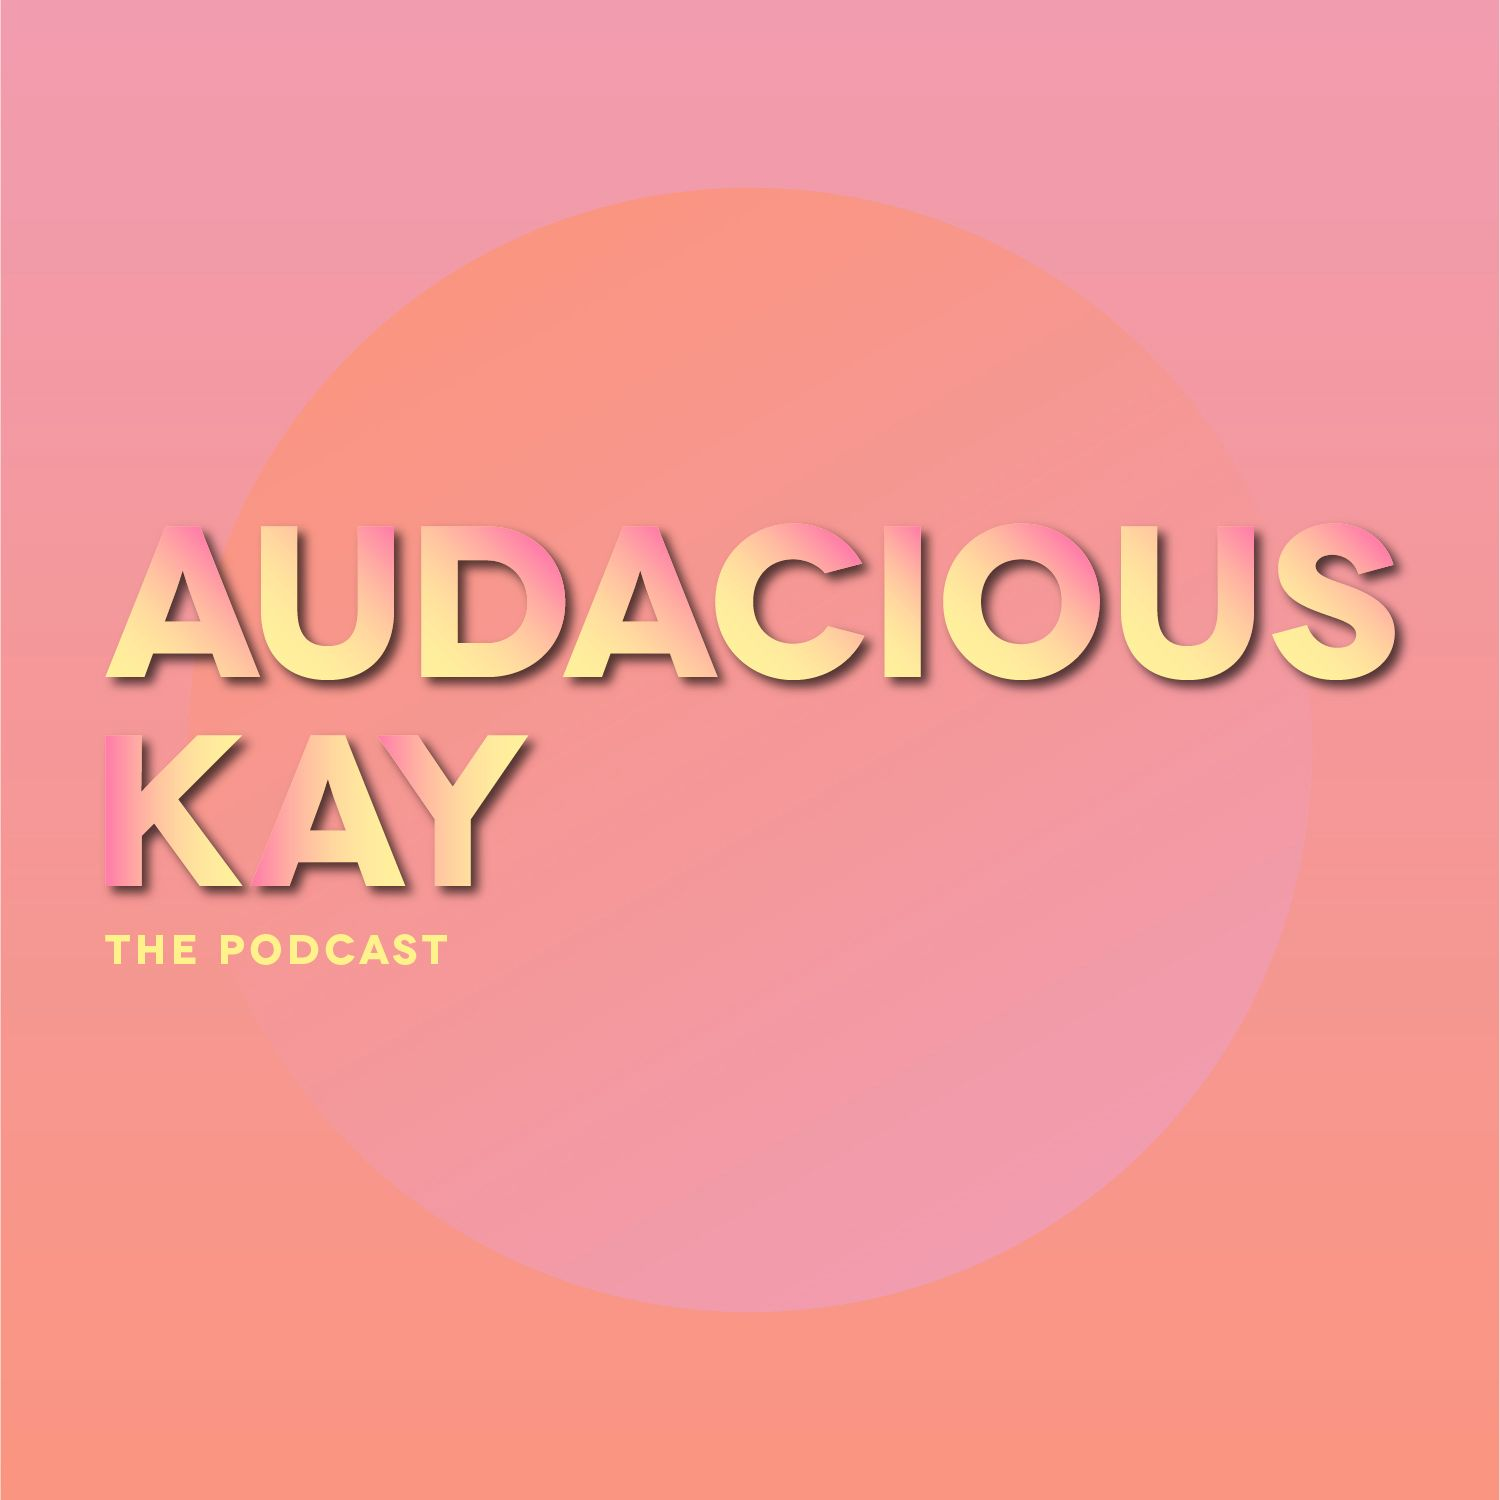 Audacious Kay - The Podcast